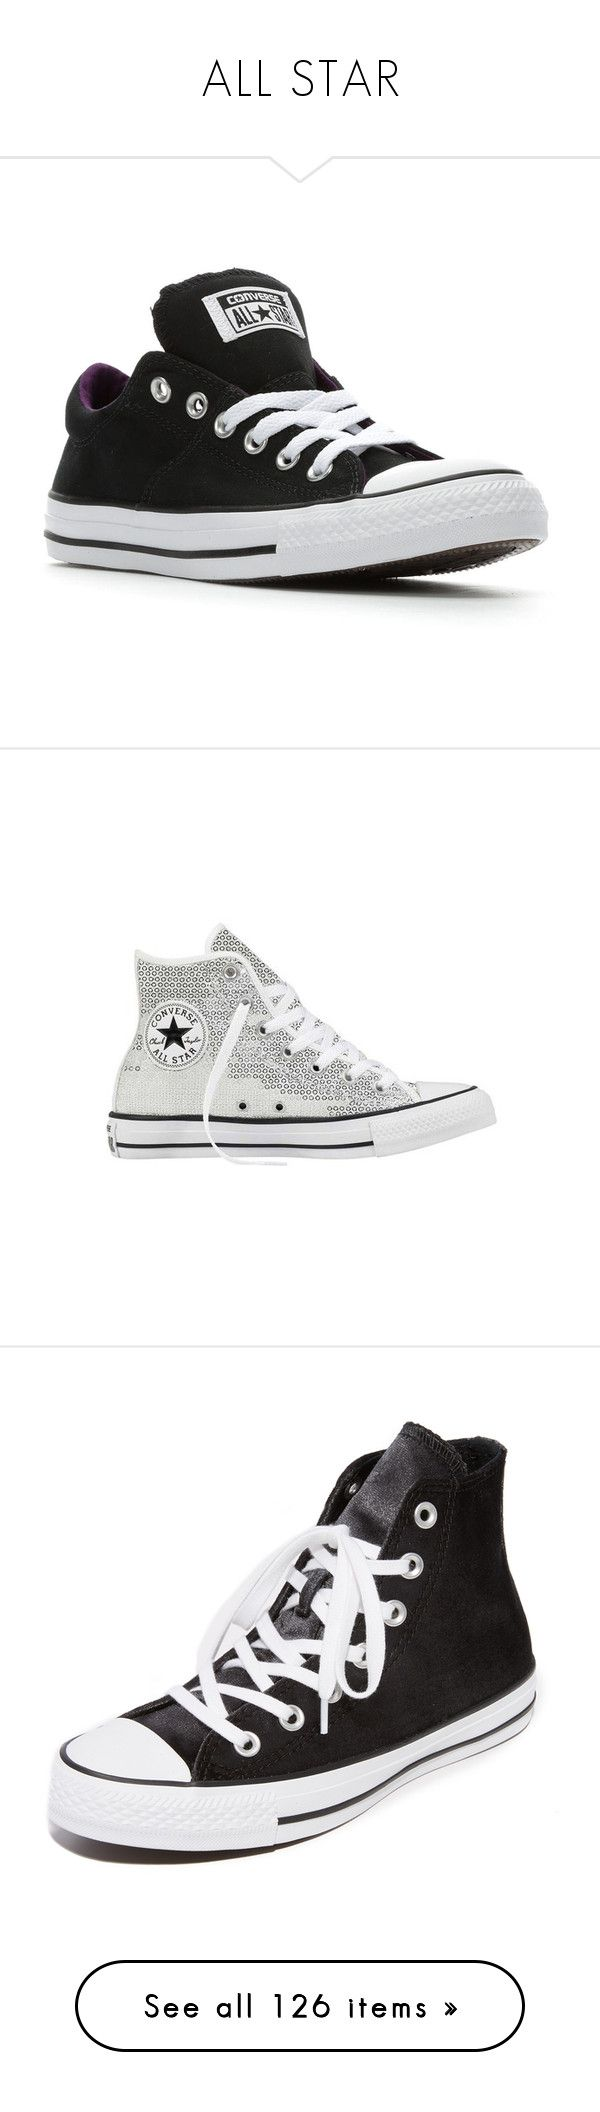 """ALL STAR"" by missk2blue ❤ liked on Polyvore featuring shoes, sneakers, converse shoes, converse trainers, converse footwear, converse sneakers, converse, casual, black high top shoes and converse high tops"